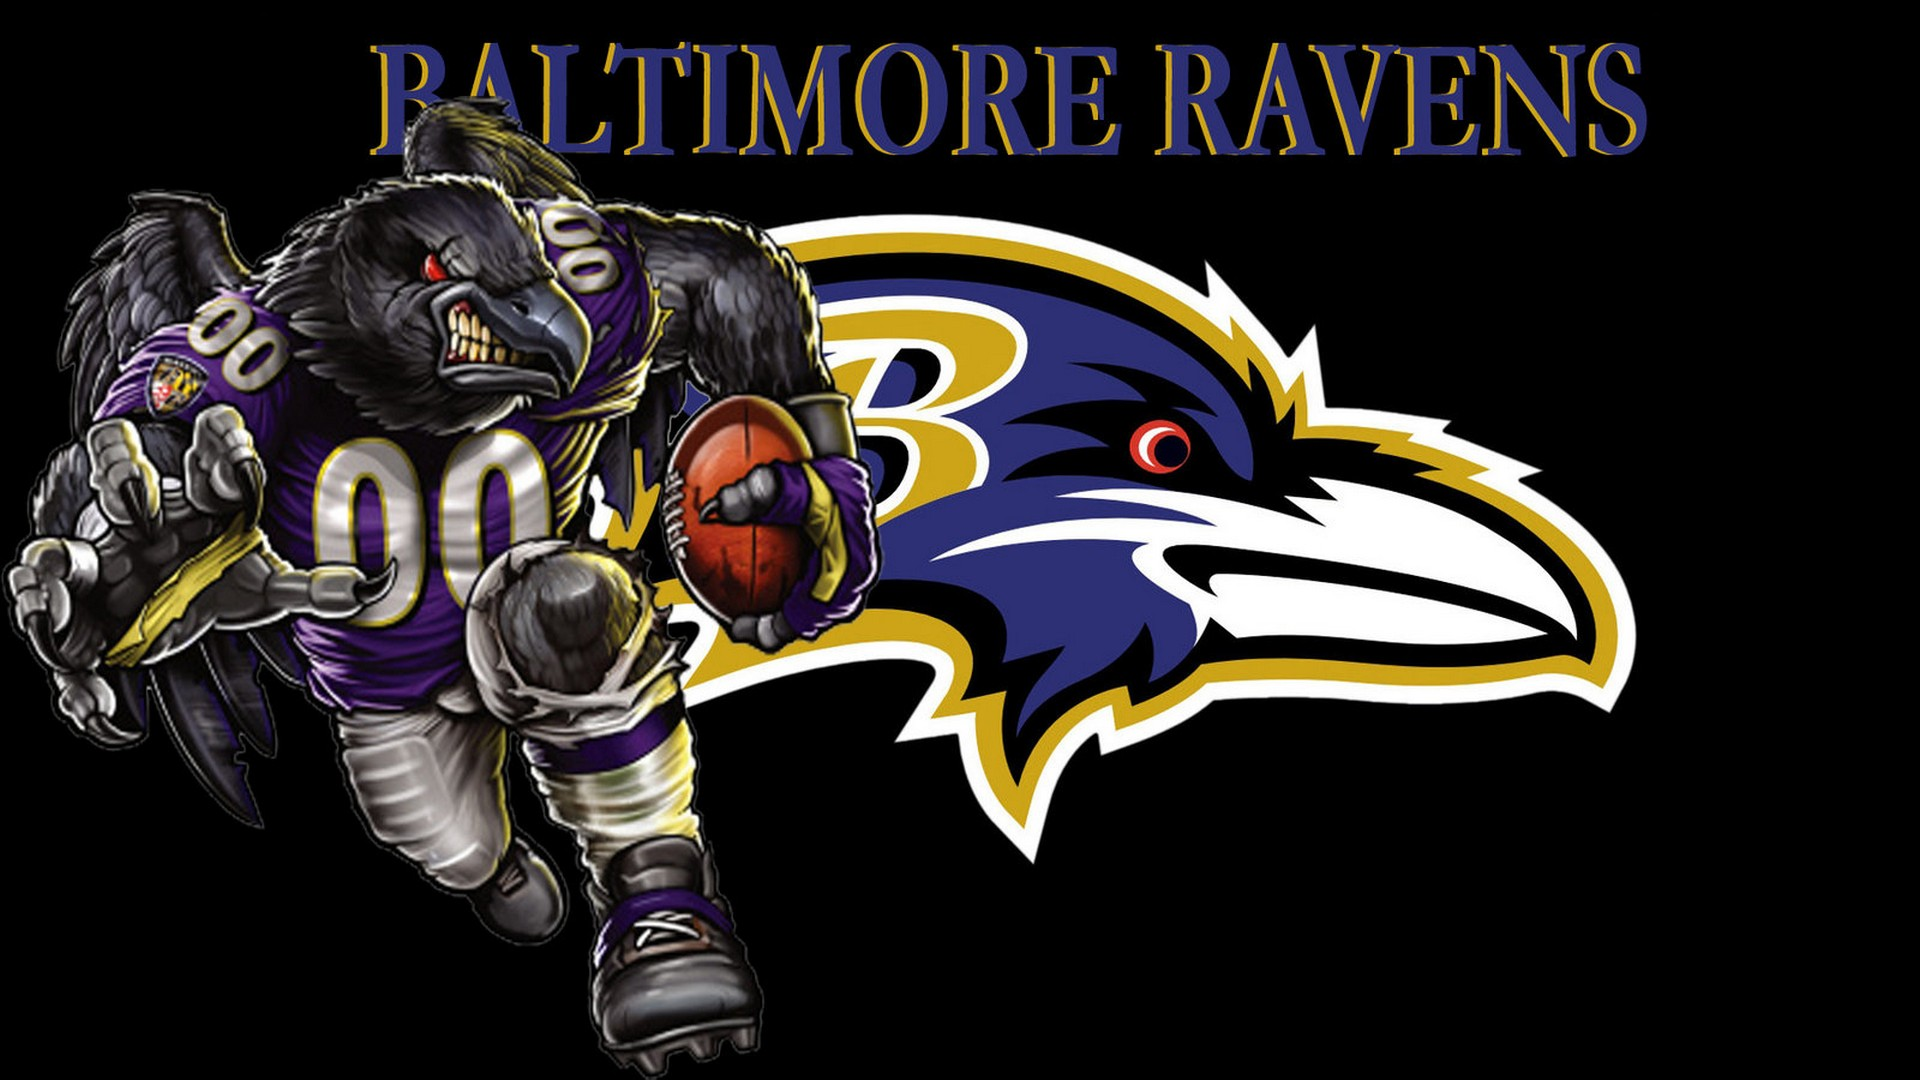 Baltimore Ravens Wallpaper 2020 NFL Football Wallpapers 1920x1080